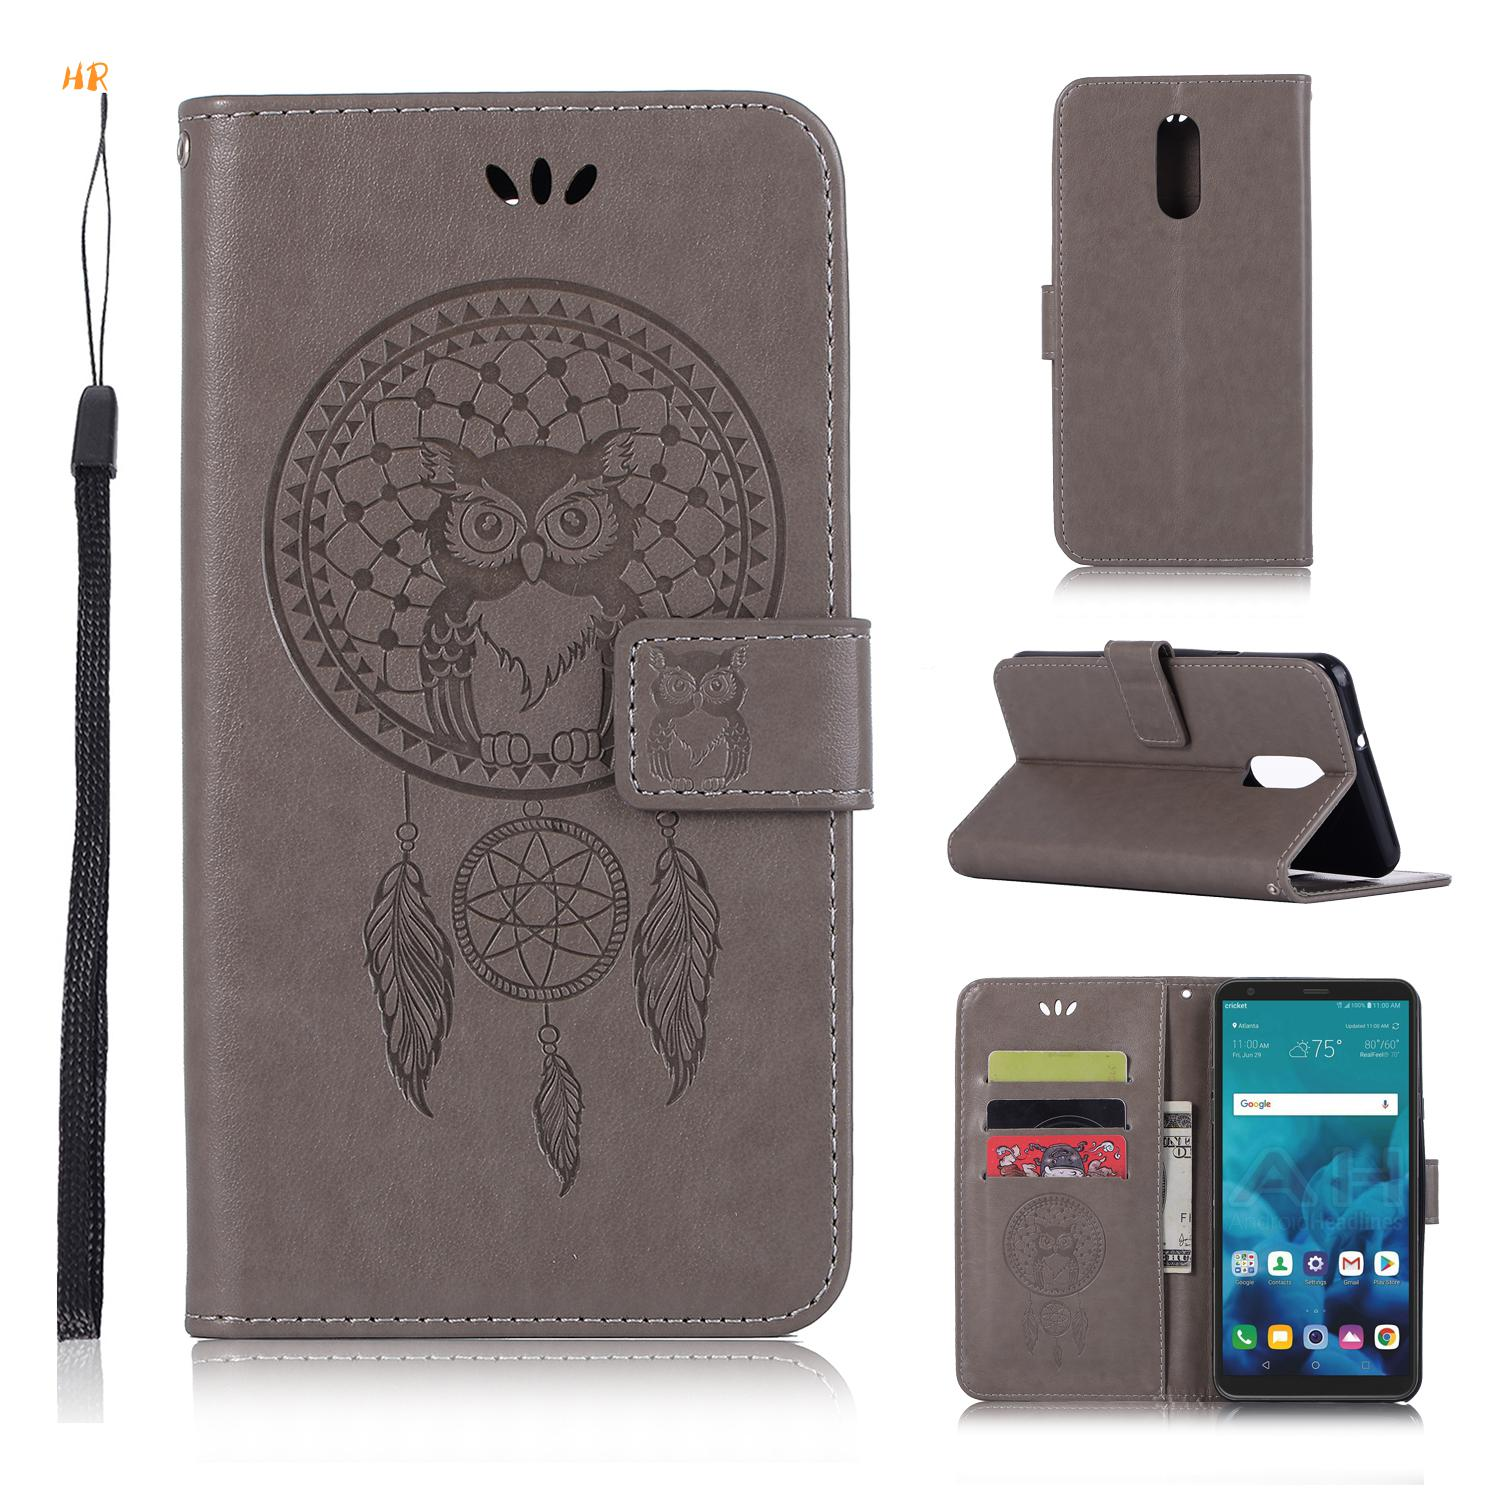 For Lg Stylus 2 K520 New Leather Flip Book Wallet Phone Case Cases, Covers & Skins Tempered Glass